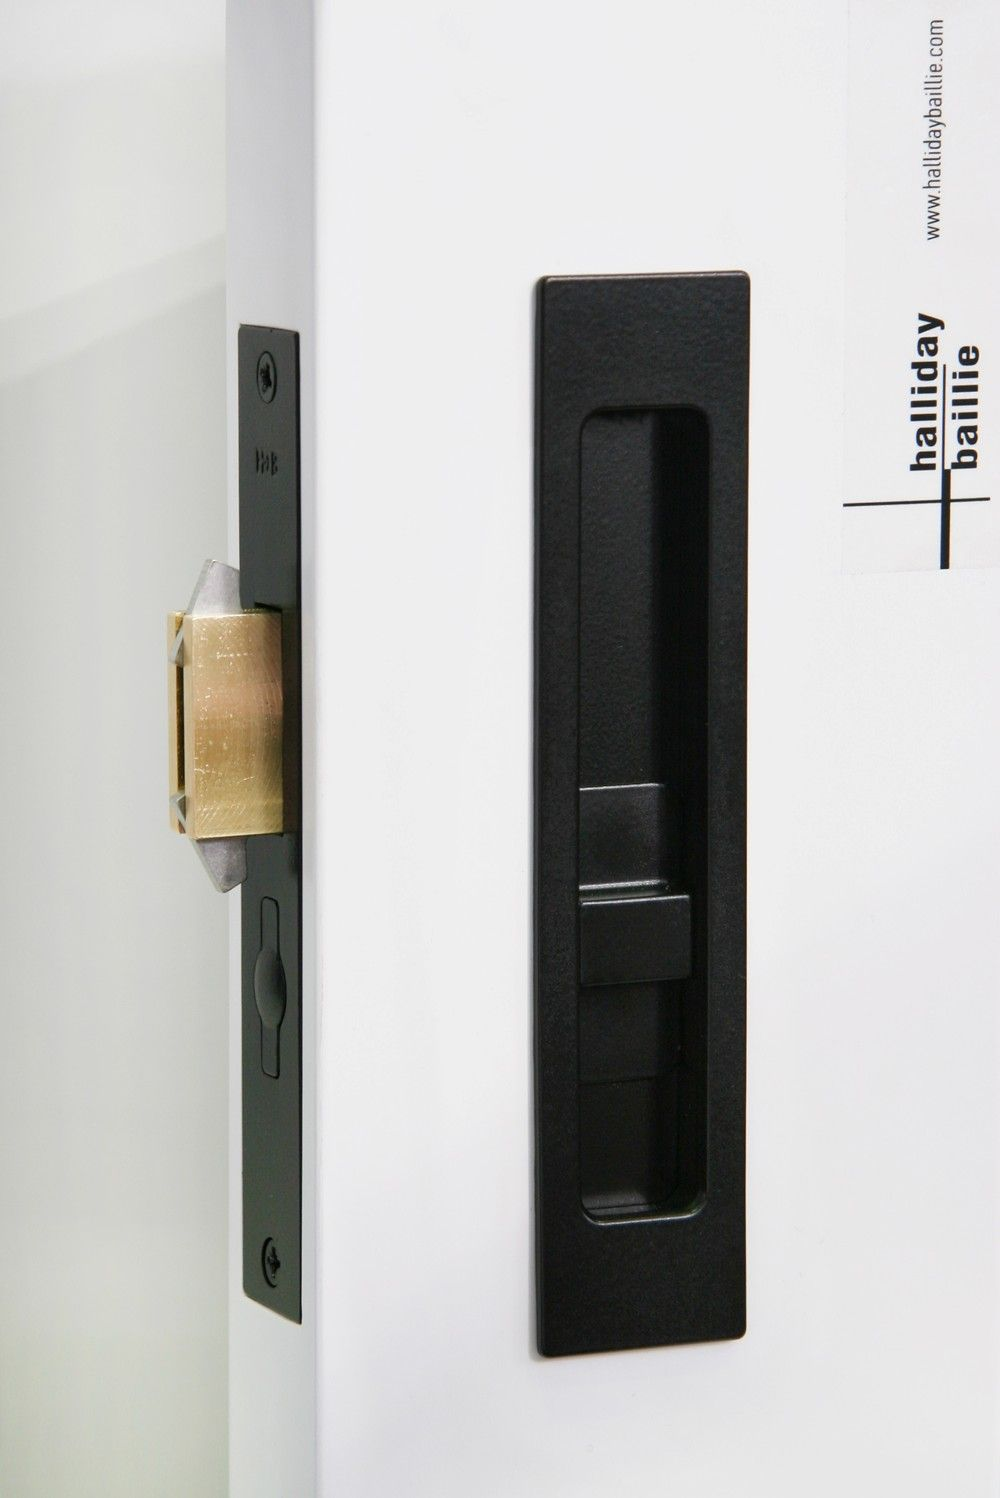 Sliding door hardware hb 690 privacy lock halliday for Door hardware ideas